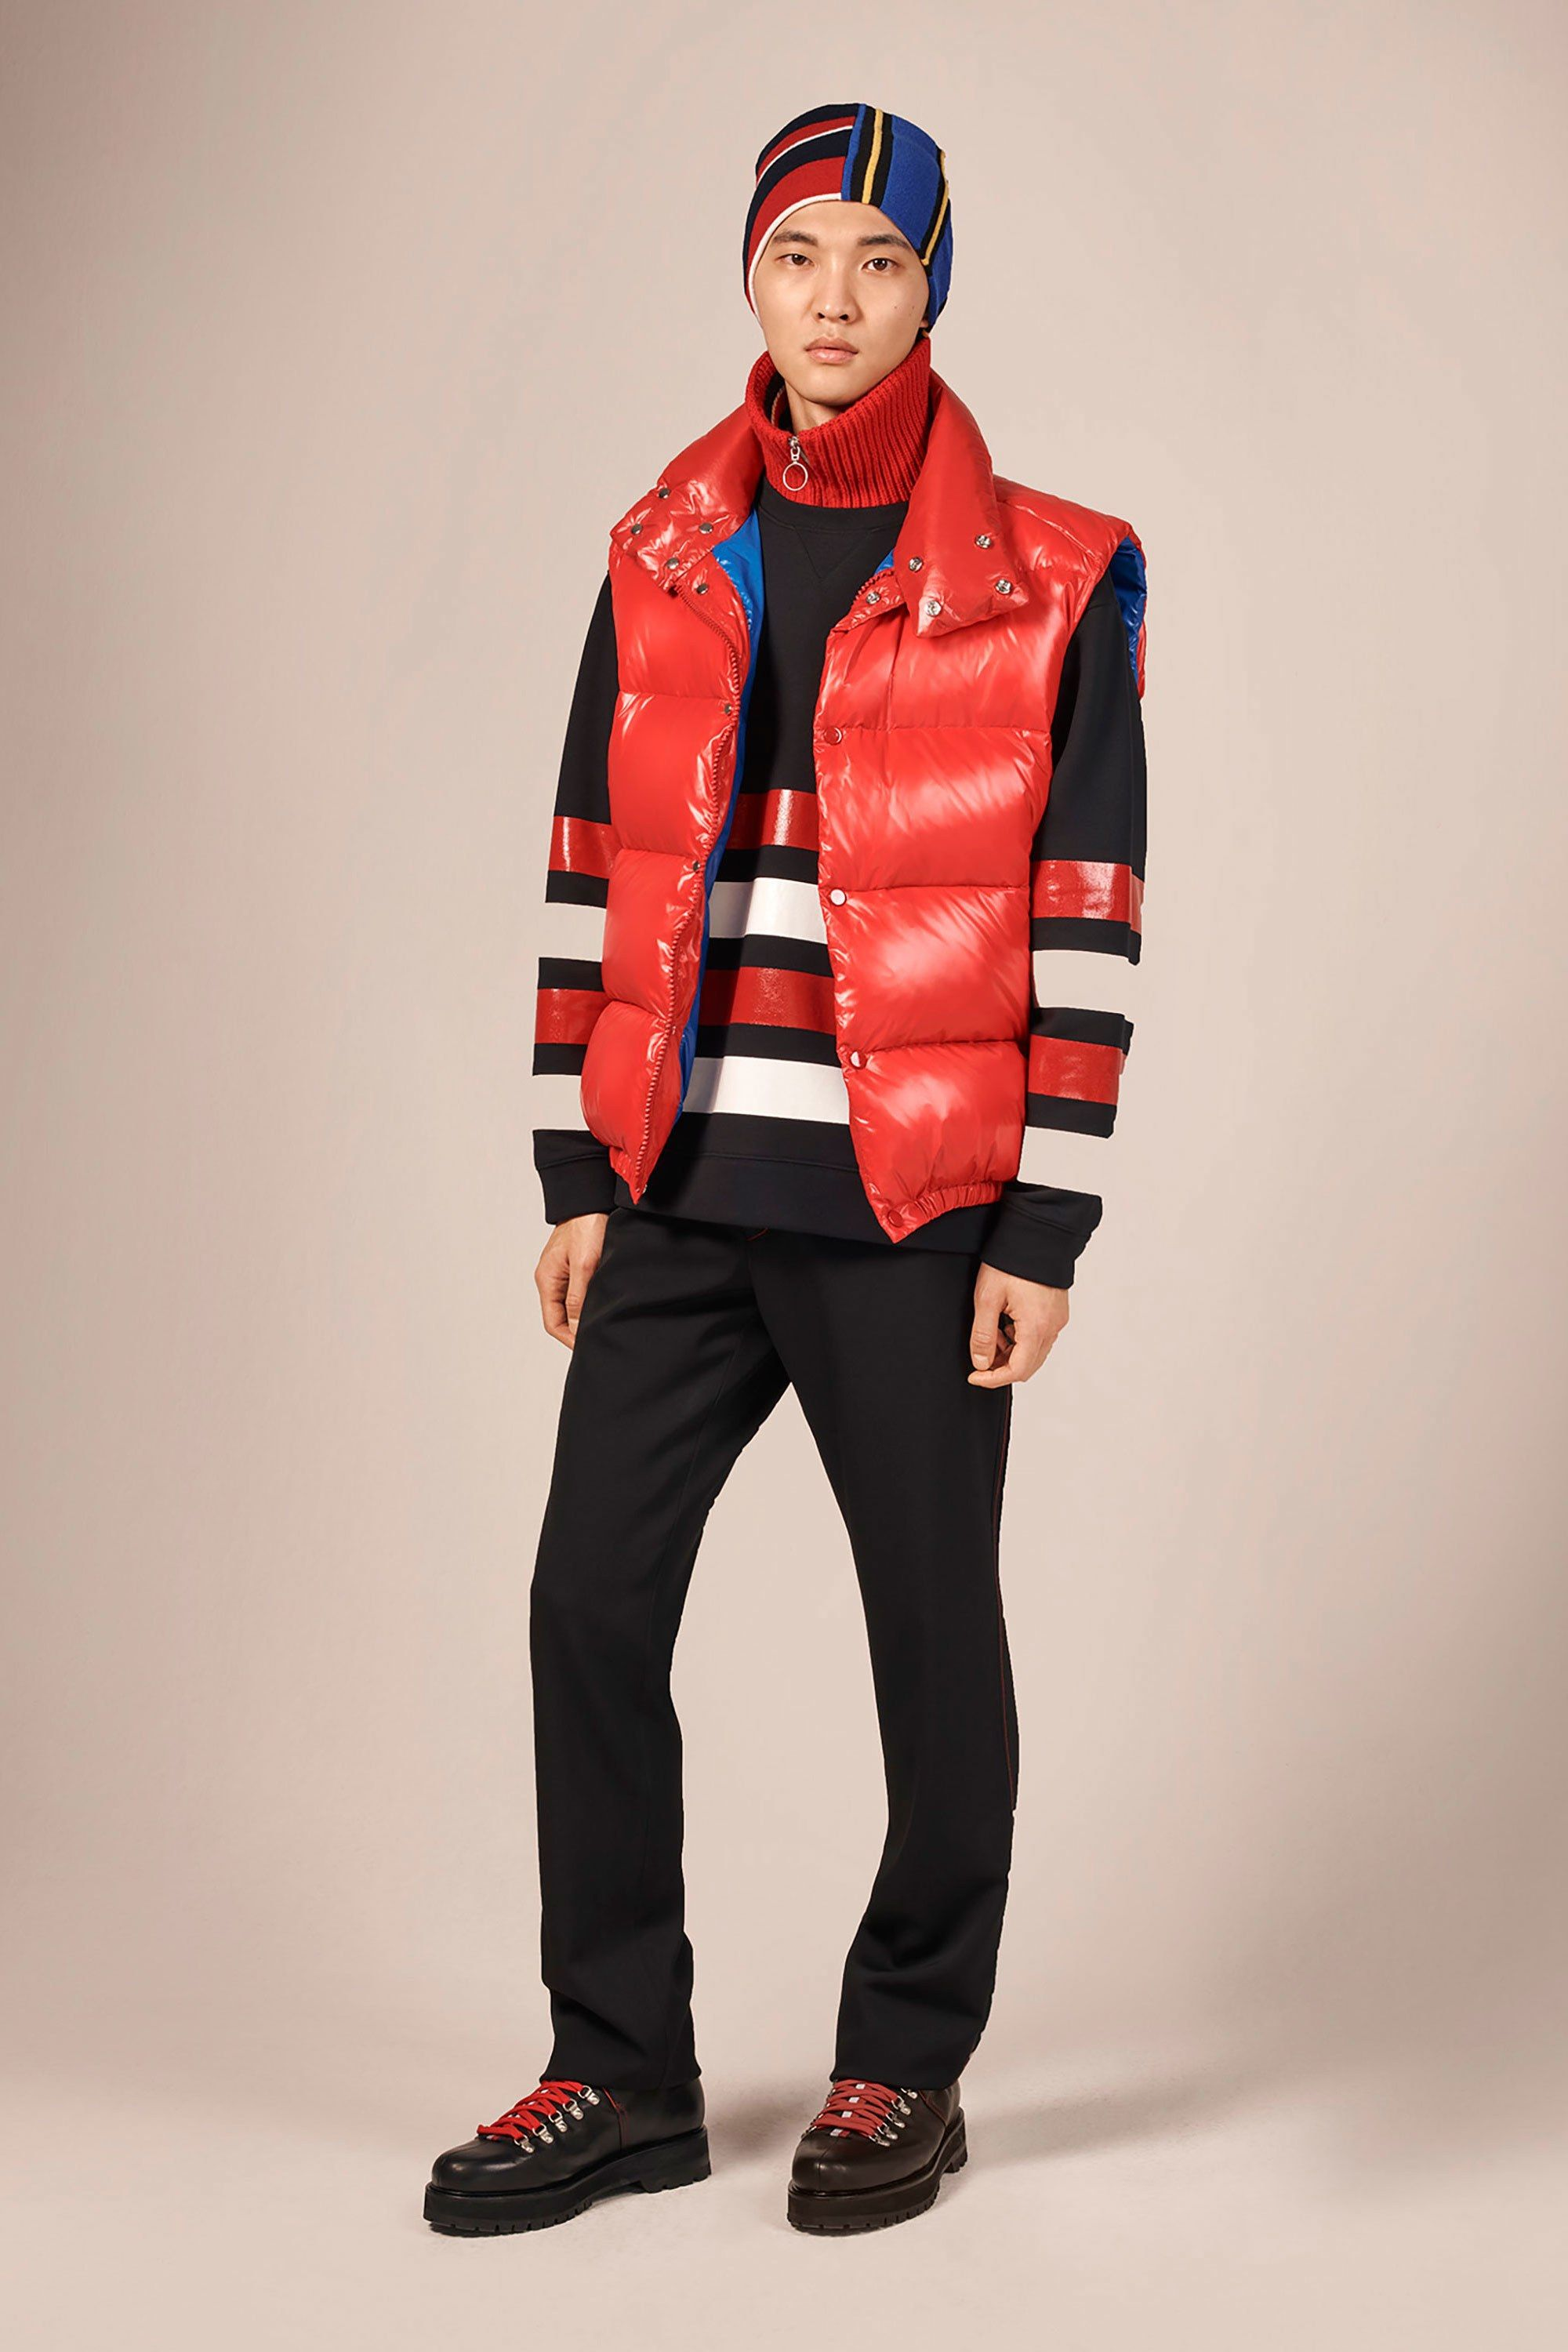 bc1e31c72 Tommy Hilfiger Fall 2018 Menswear Collection - Vogue